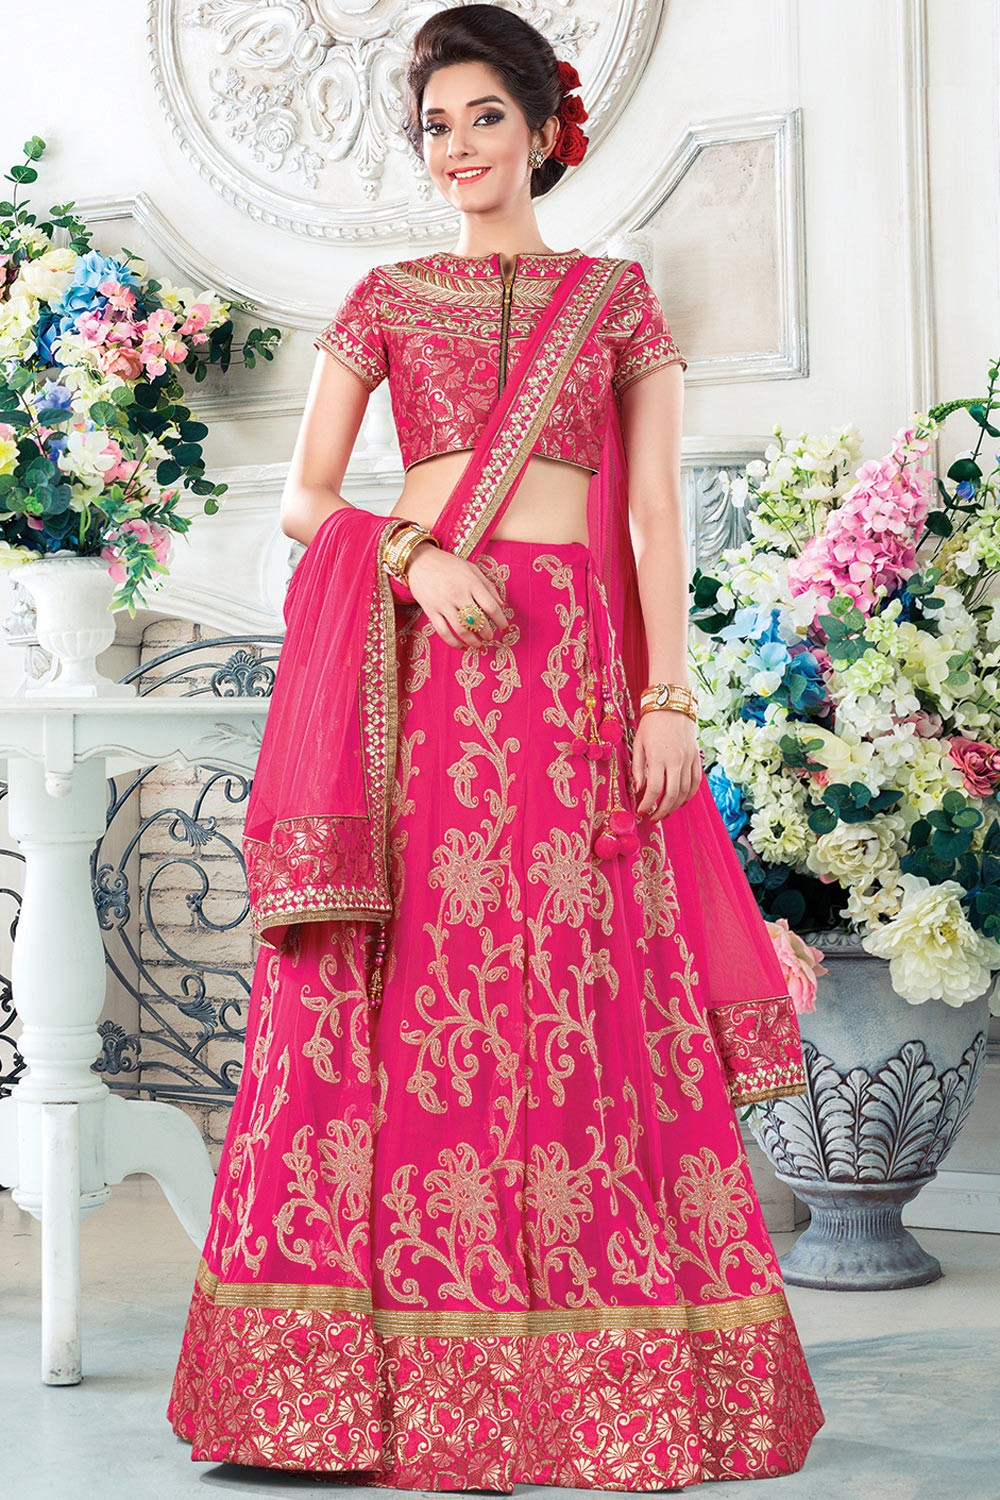 Paaneri Designer Pink Color Floral Thread Work Net Unstich Lehenga With Net Pallu-Product Code-17119710205